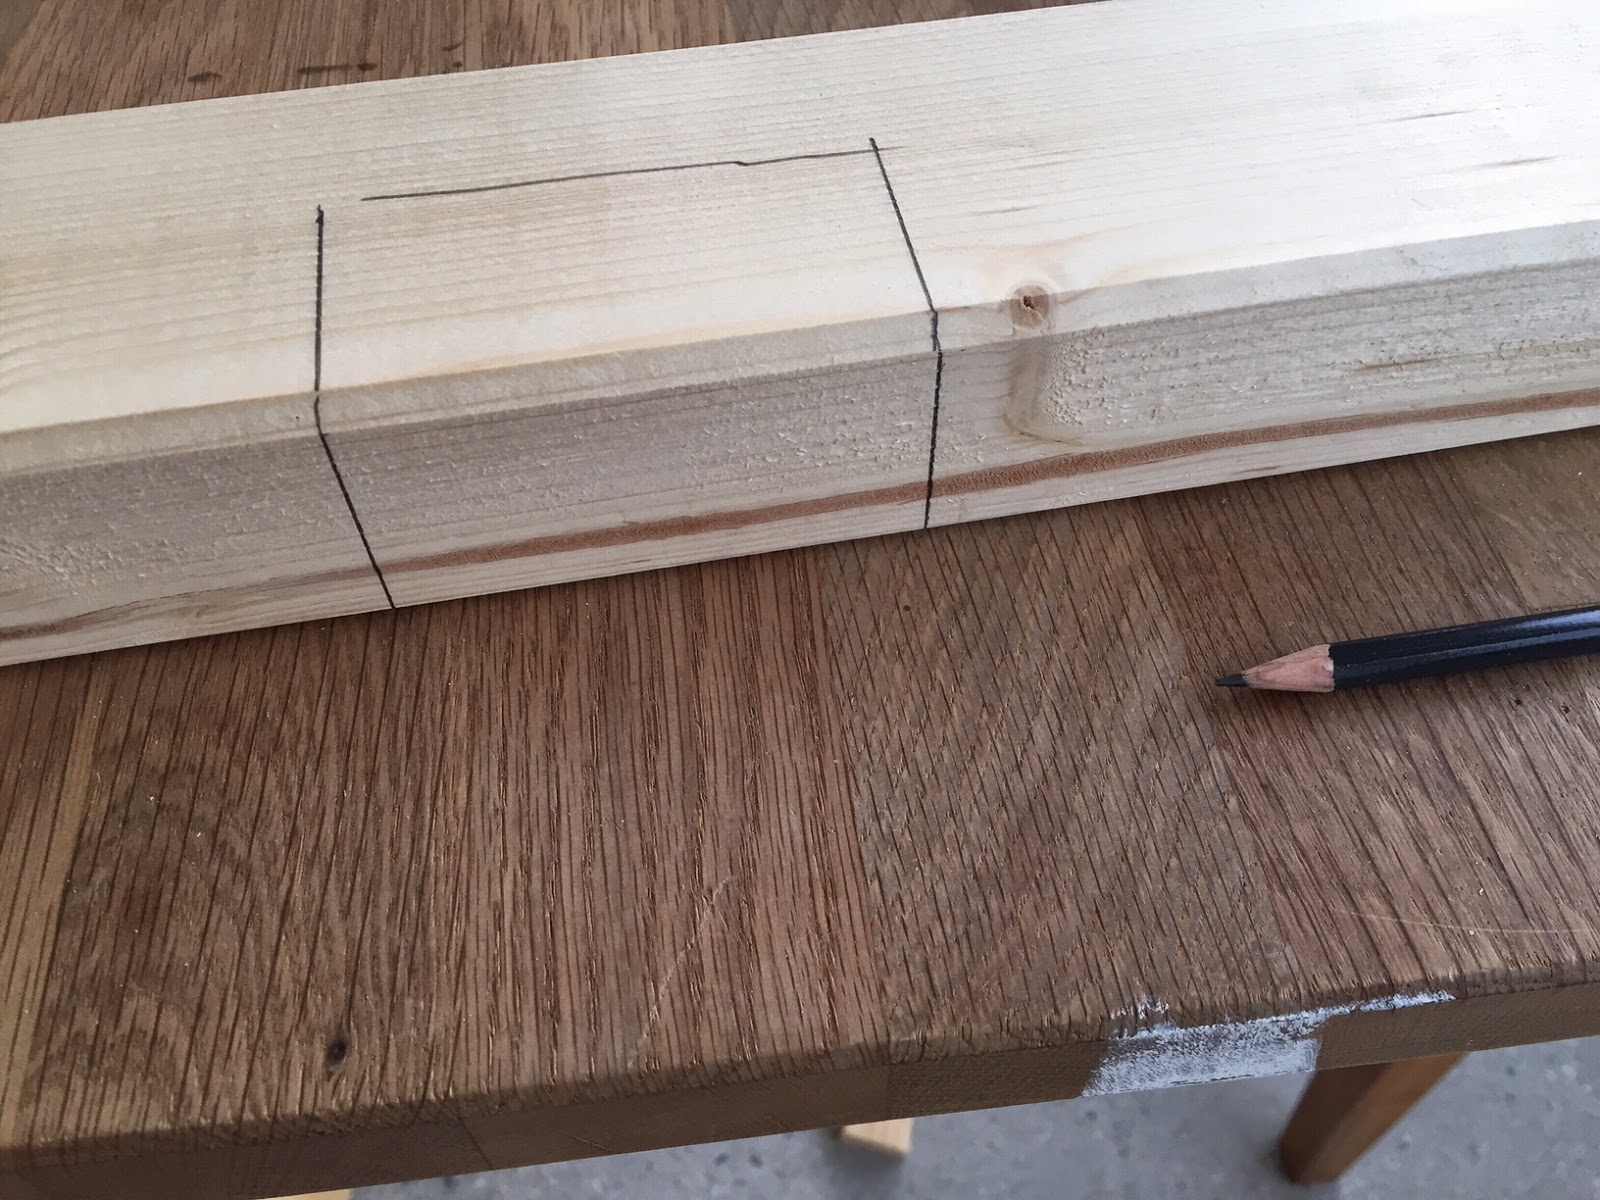 The Trickiest Part Is To Decide On How To Connect The Table Top  Horizontally. I Decided On Using Cross Beams And Hand Cut Two Notches Each.